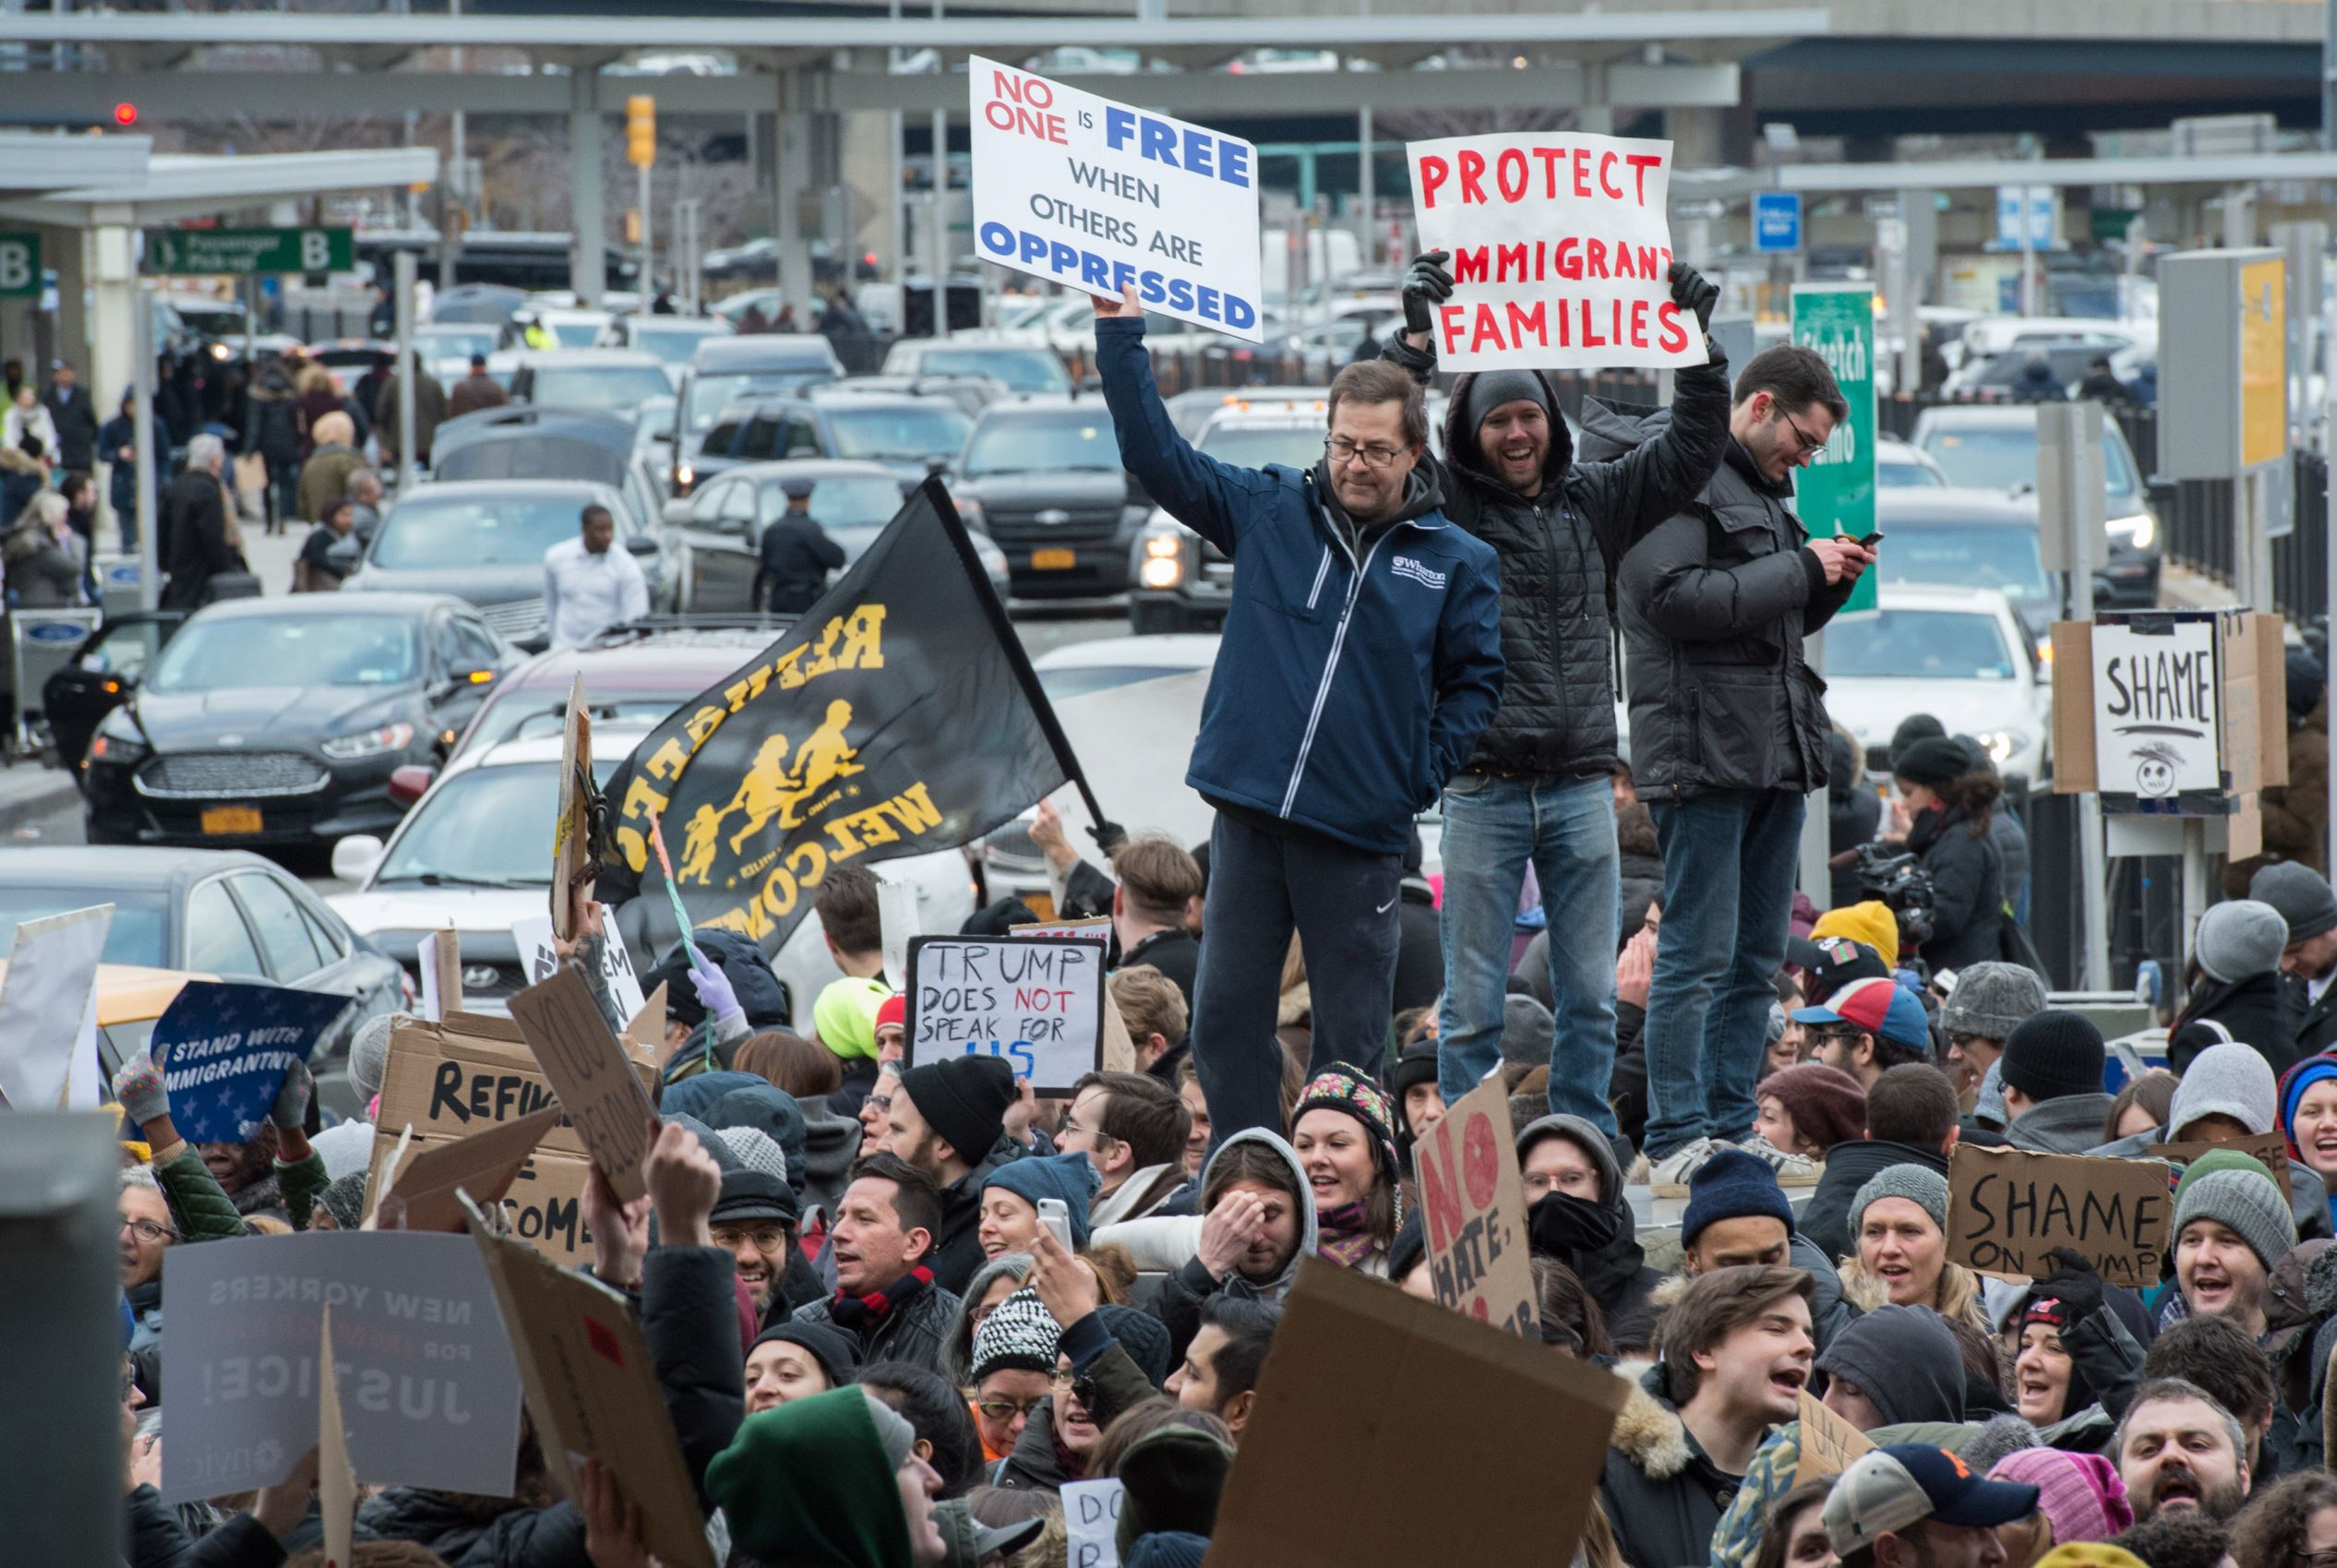 Protesters gather at JFK International Airport's Terminal 4 to demonstrate against President Donald Trump's executive order on January 28, 2017, in New York. Trump has signed a sweeping executive order to suspend refugee arrivals and impose tough controls on travellers from Iran, Iraq, Libya, Somalia, Sudan, Syria and Yemen.